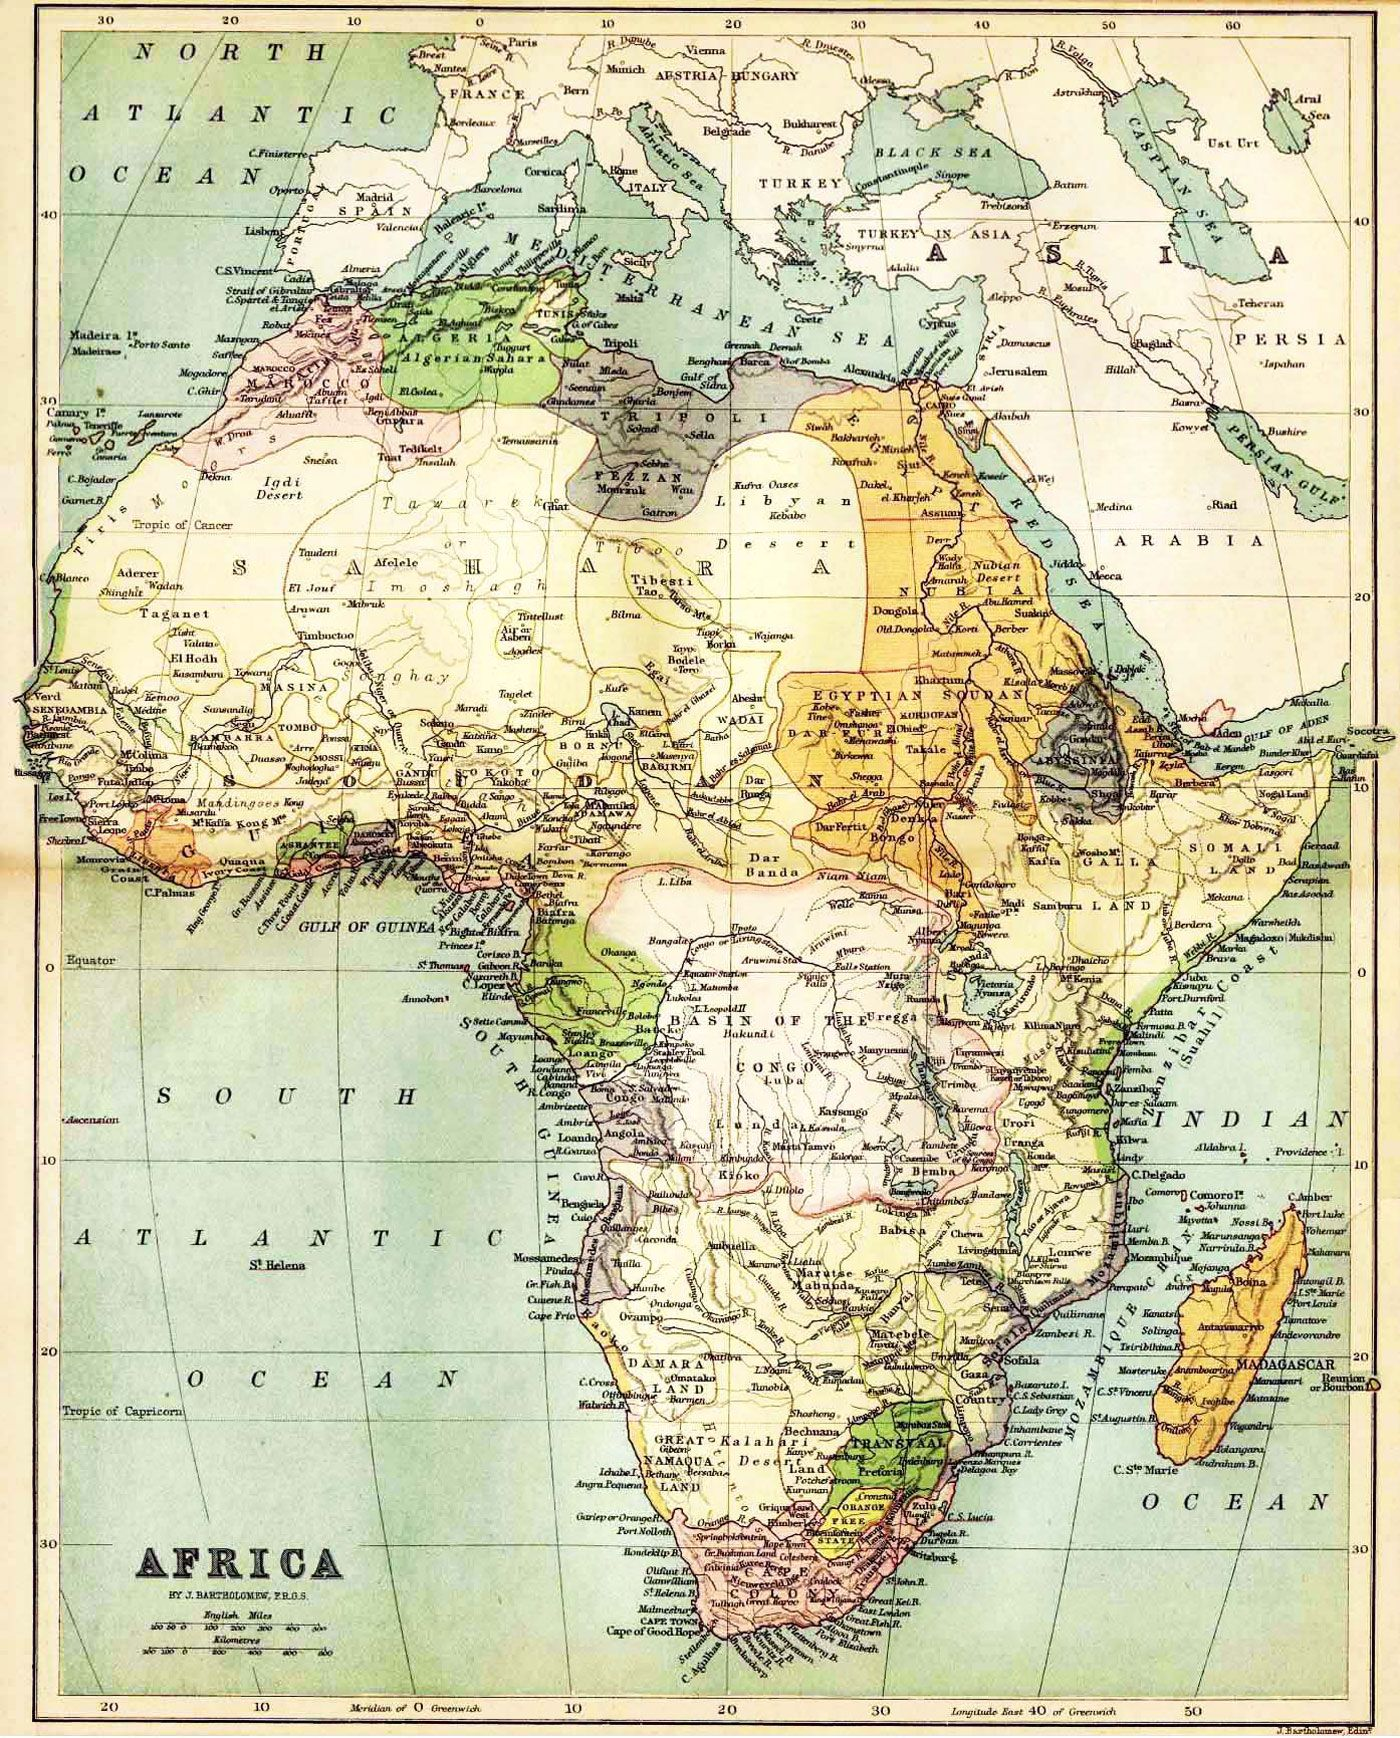 Angola On Africa Map.Part 1 1 A Angola Is Found In The Continent Of Africa Africa Is